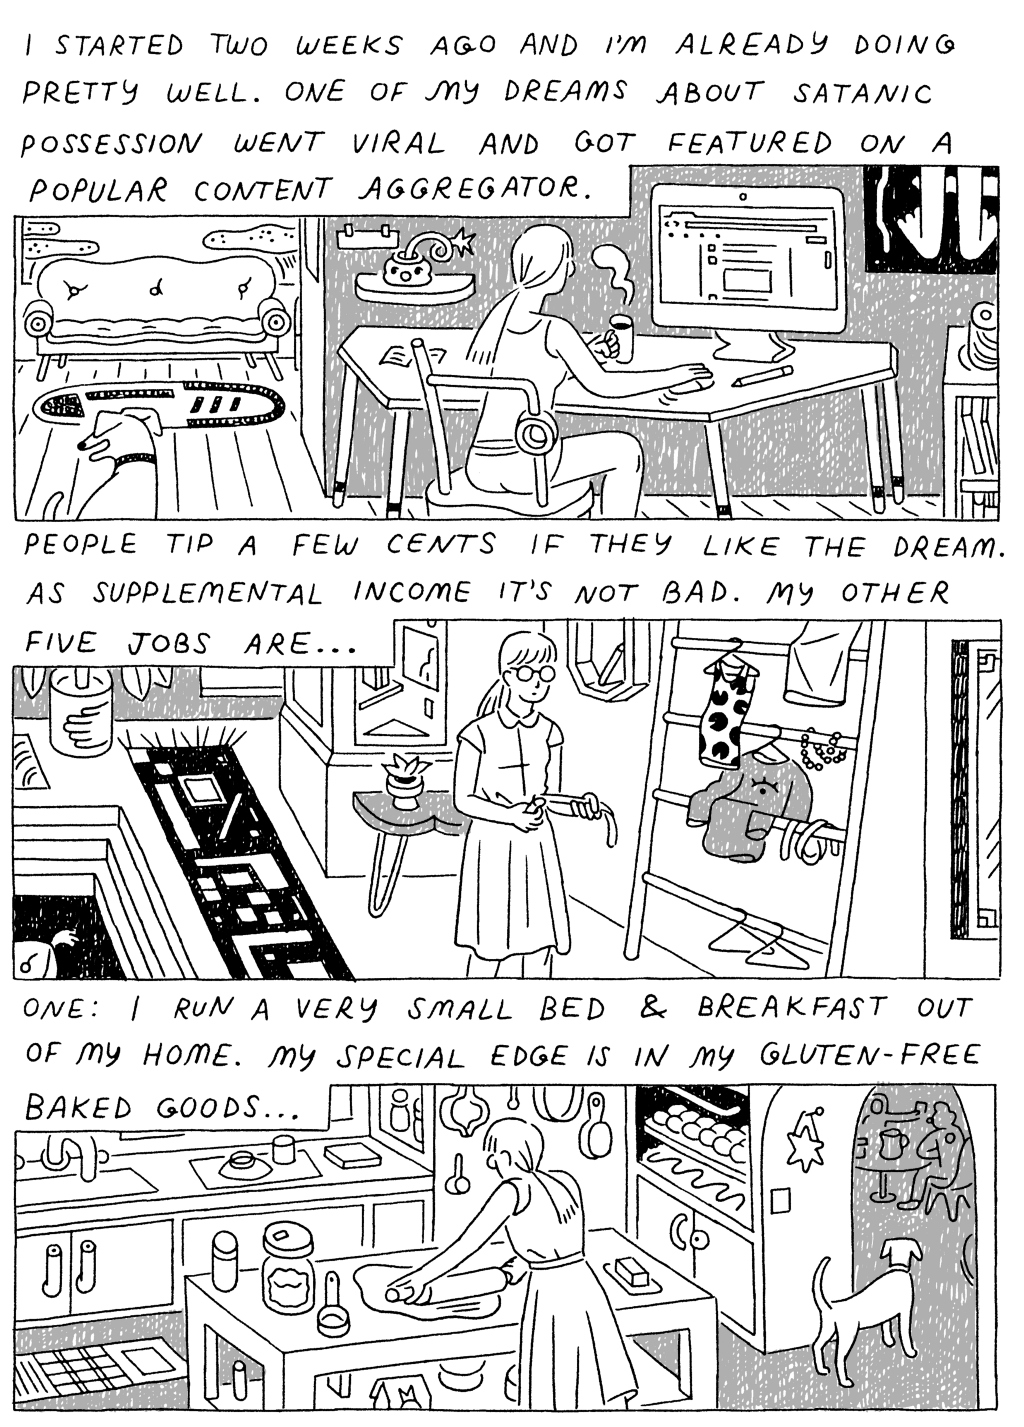 Panel 1:  (Woman, sitting at computer.) I started two weeks ago and I'm already doing pretty well. One of my dreams about satanic possession went viral and got featured on a popular content aggregator.   Panel 2:  (Woman, walking through apartment.)  People tip a few cents if they like the dream. As supplemental income, it's not bad. My other five jobs are...  Panel 3:  (Woman, rolling out dough in kitchen.) One: I run a very small bed and breakfast out of my home. My special edge is in my gluten-free baked goods...